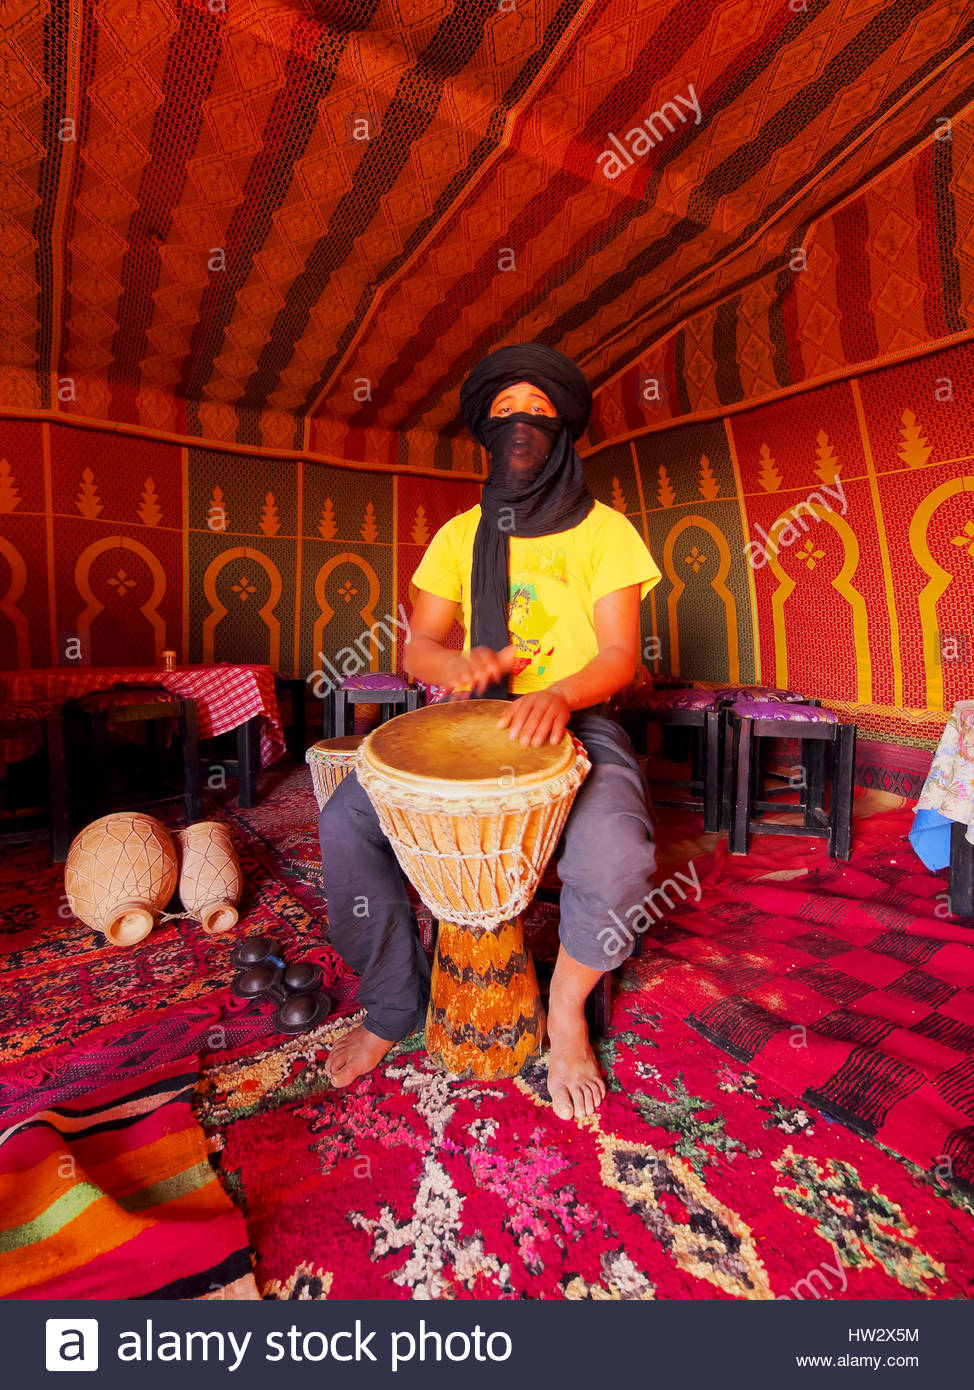 ZAGORA DESERT, MOROCCO, MAY 04: Unidentified Berber man playing the drum inside of the tent on the Zagora Desert - Stock Image